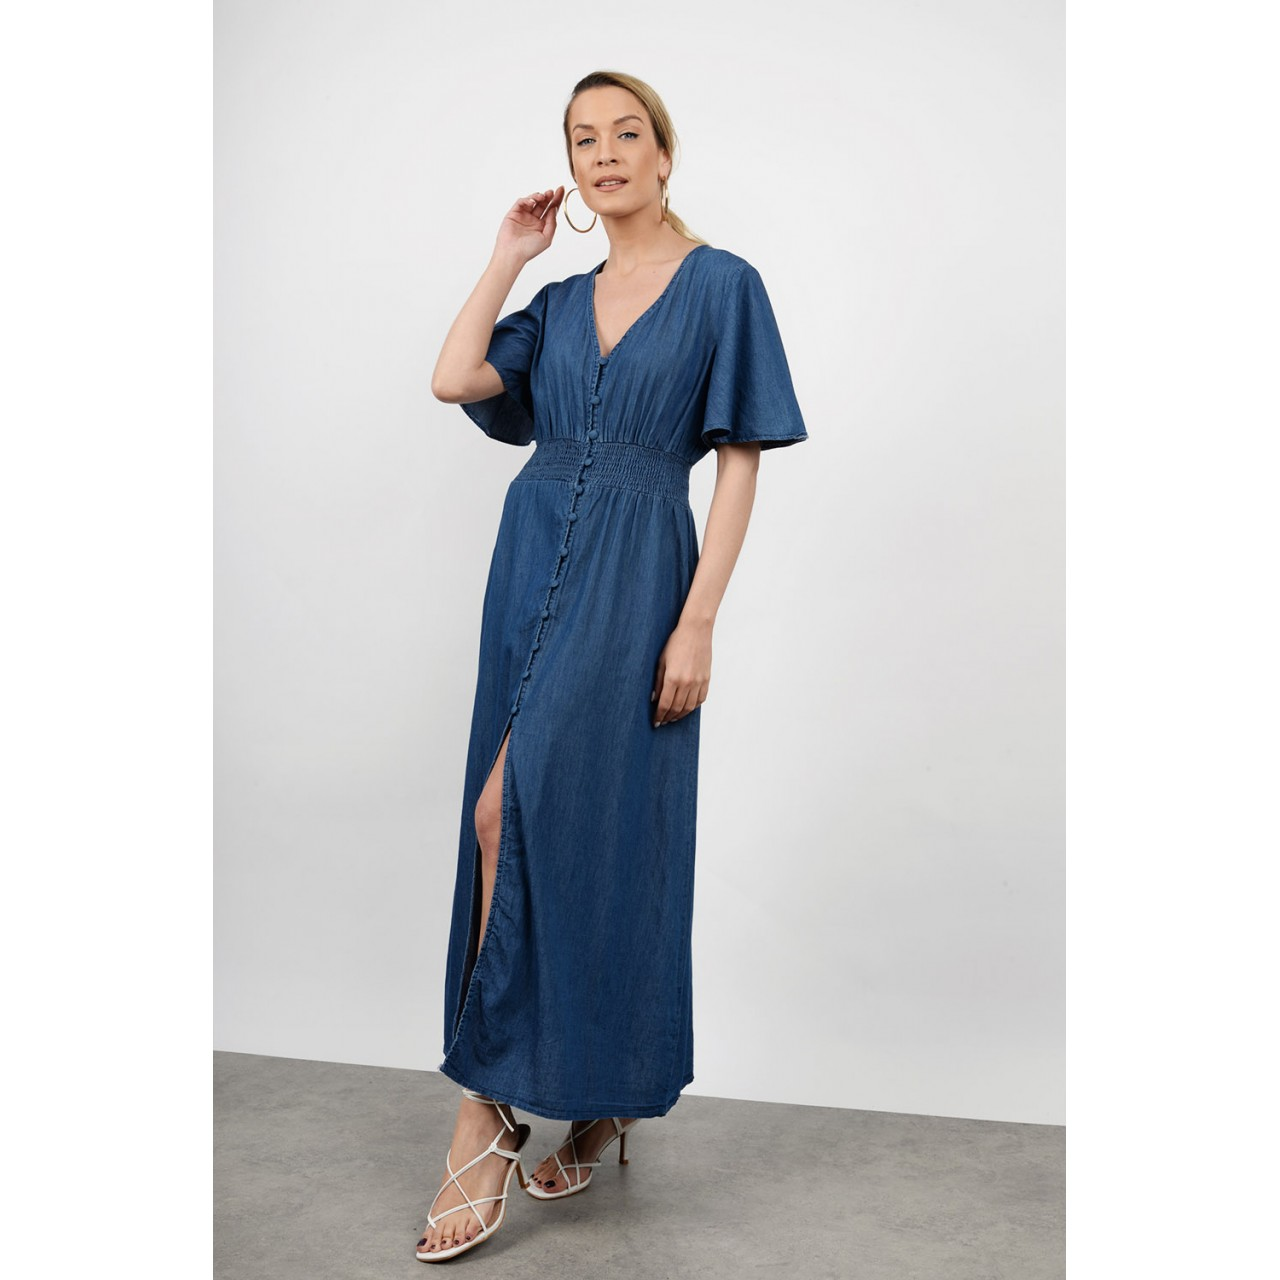 Maxi jean dress with buttons